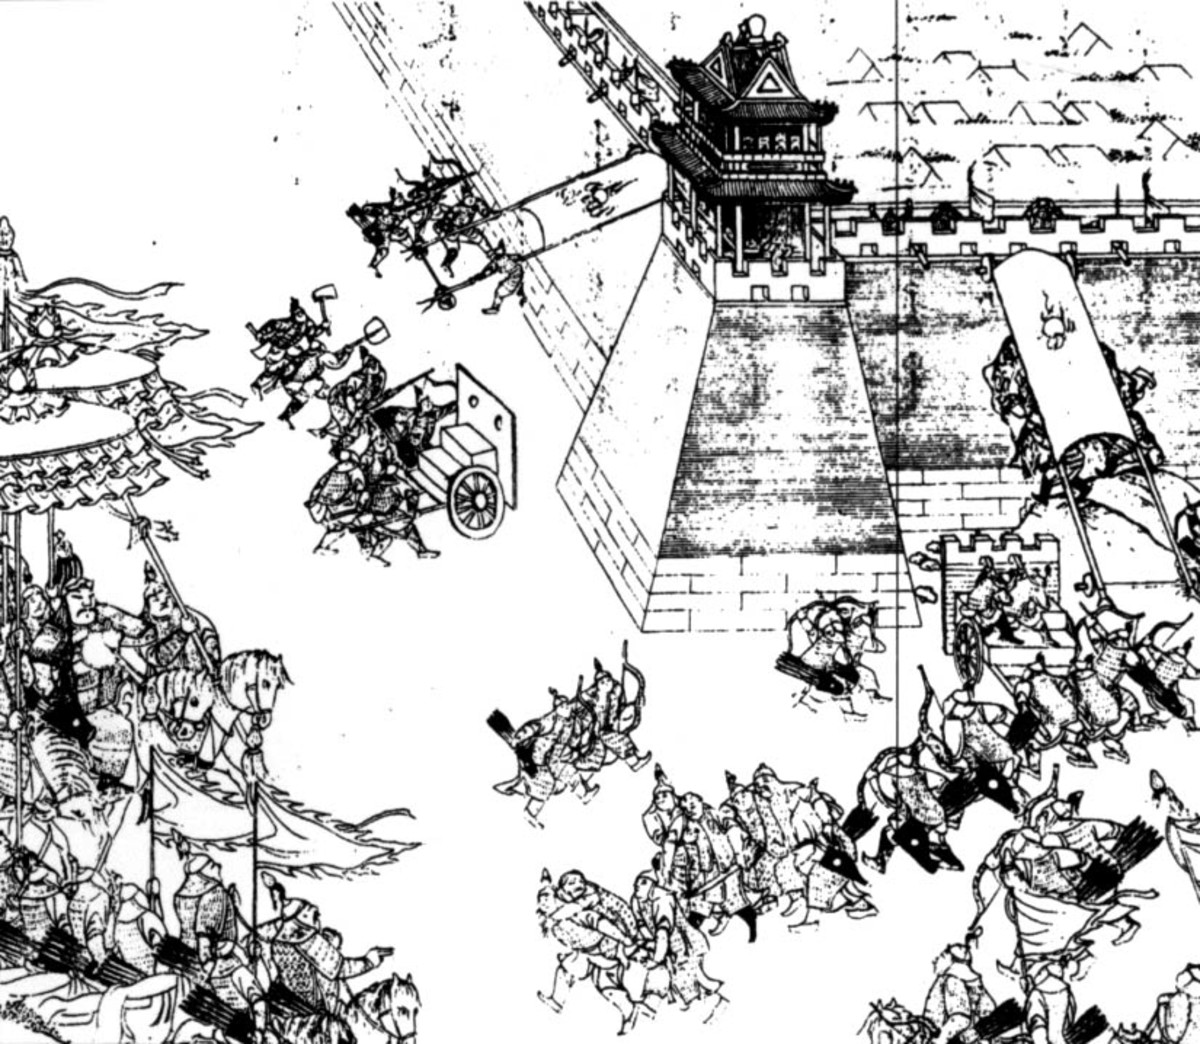 Artistic depiction of the Battle for Ningyuan; a major conflict during the Qing-Ming Transition.